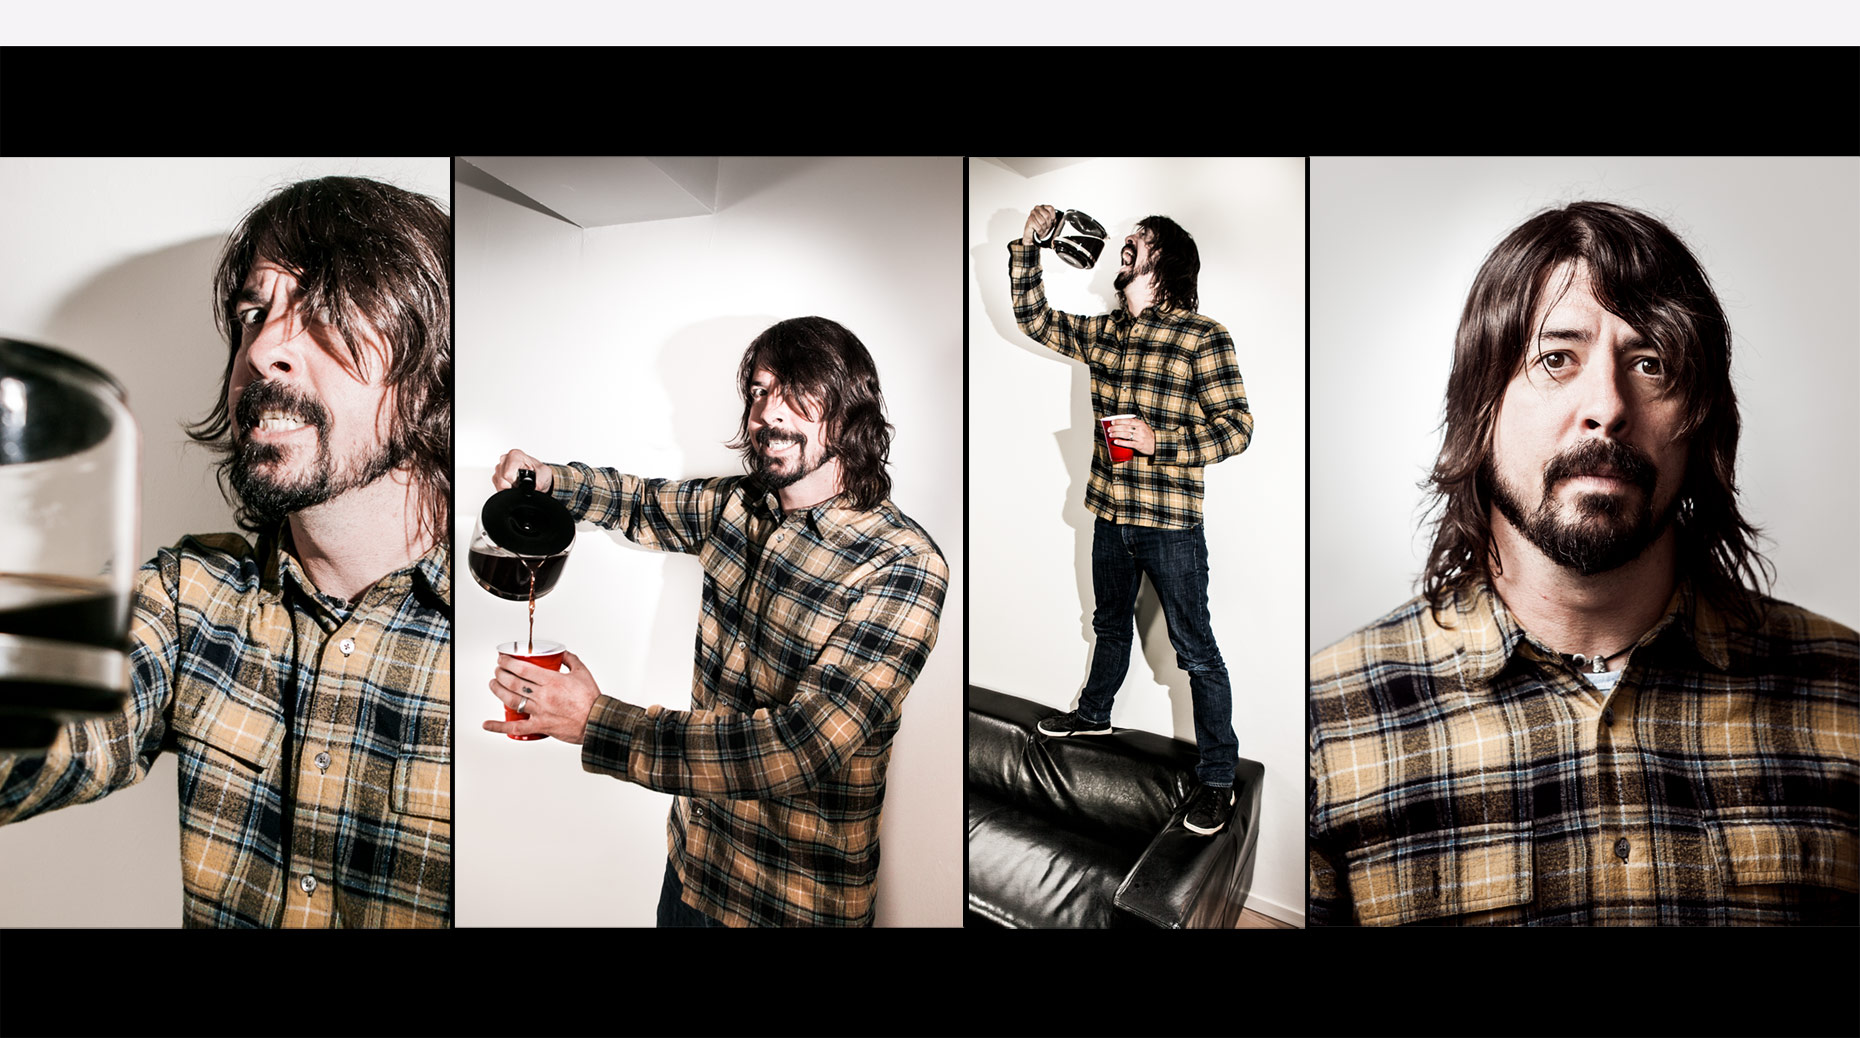 Dave Grohl by Jonas Vandall